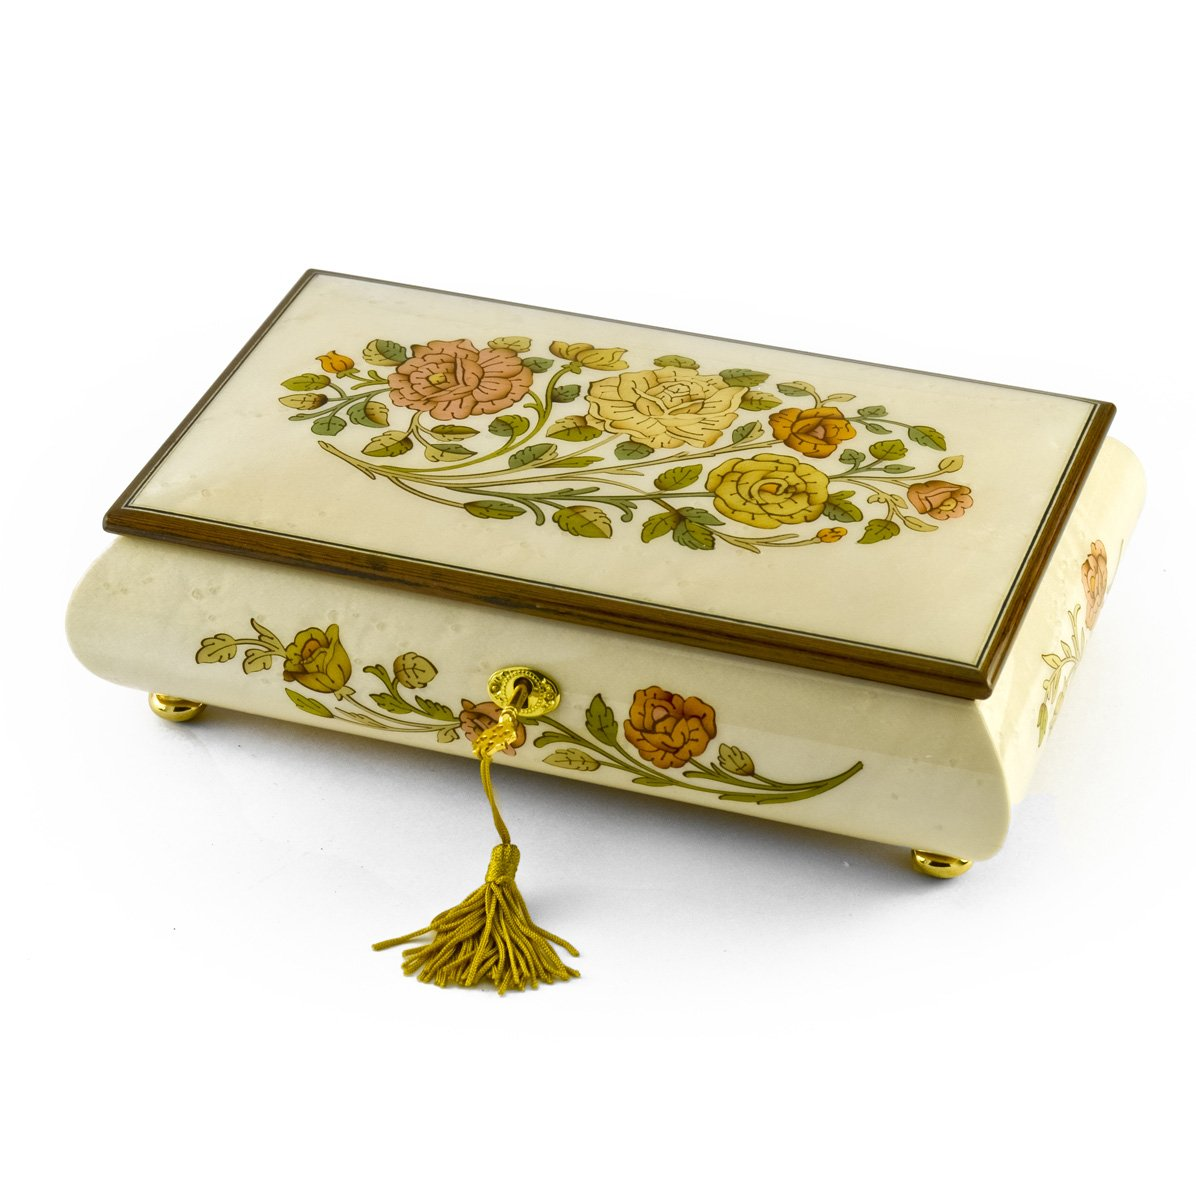 Handcrafted Bianco 18 Note Roses Inlay Musical Jewelry Box with Lock and Key - I Just Called to Say I Love You